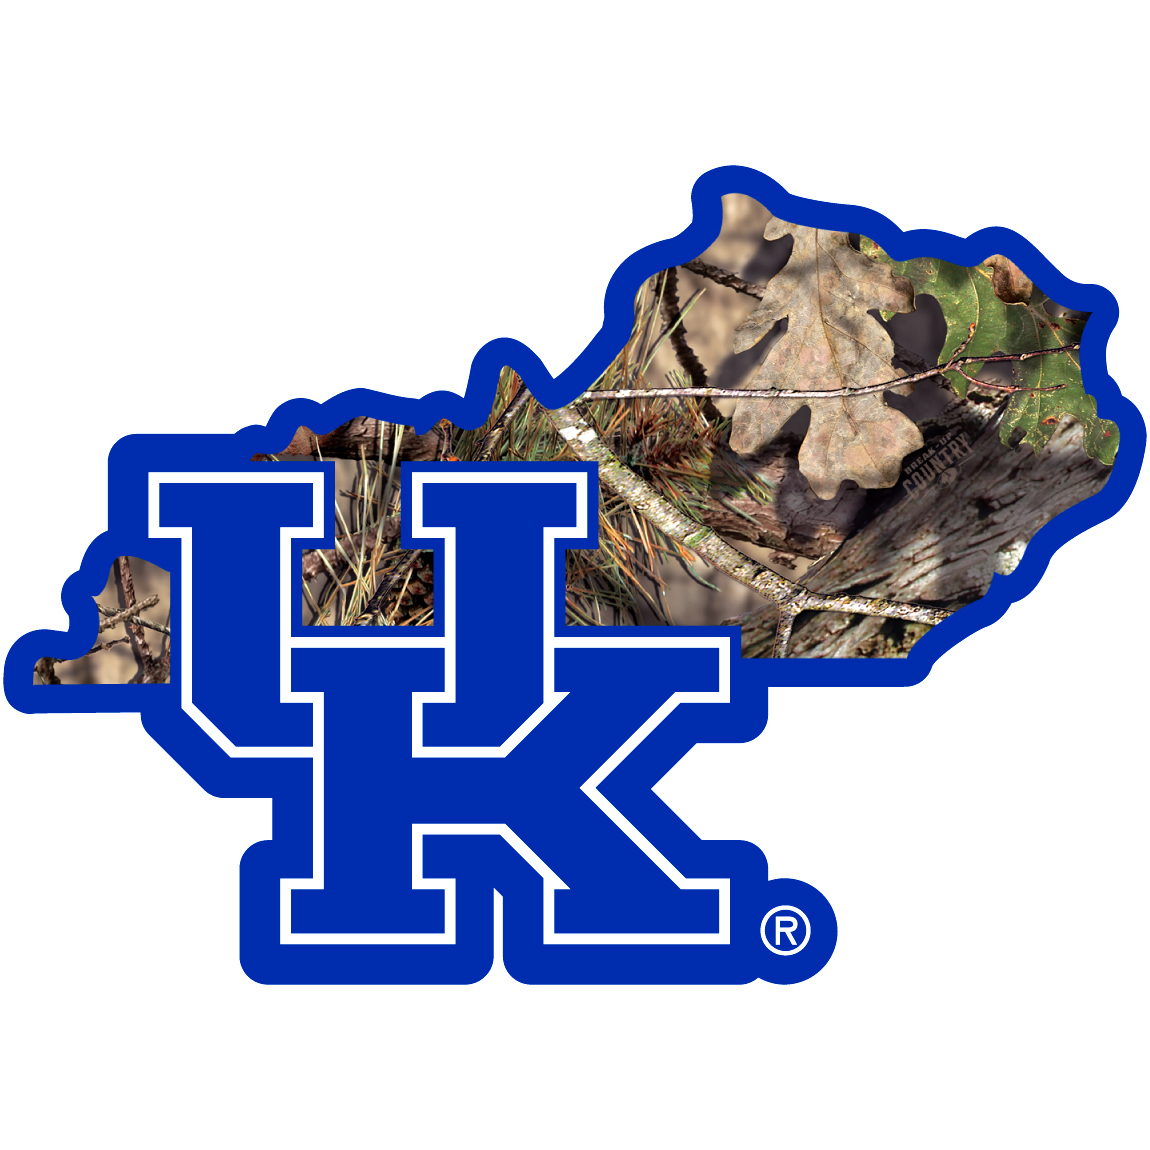 Kentucky Wildcats State Decal w/Mossy Oak Camo - It's a home state decal with a sporty twist! This Kentucky Wildcats decal features the team logo over a silhouette of the state in team colors and Mossy Oak camo and a helmet marking the home of the team. The decal is approximately 5 inches on repositionable vinyl.